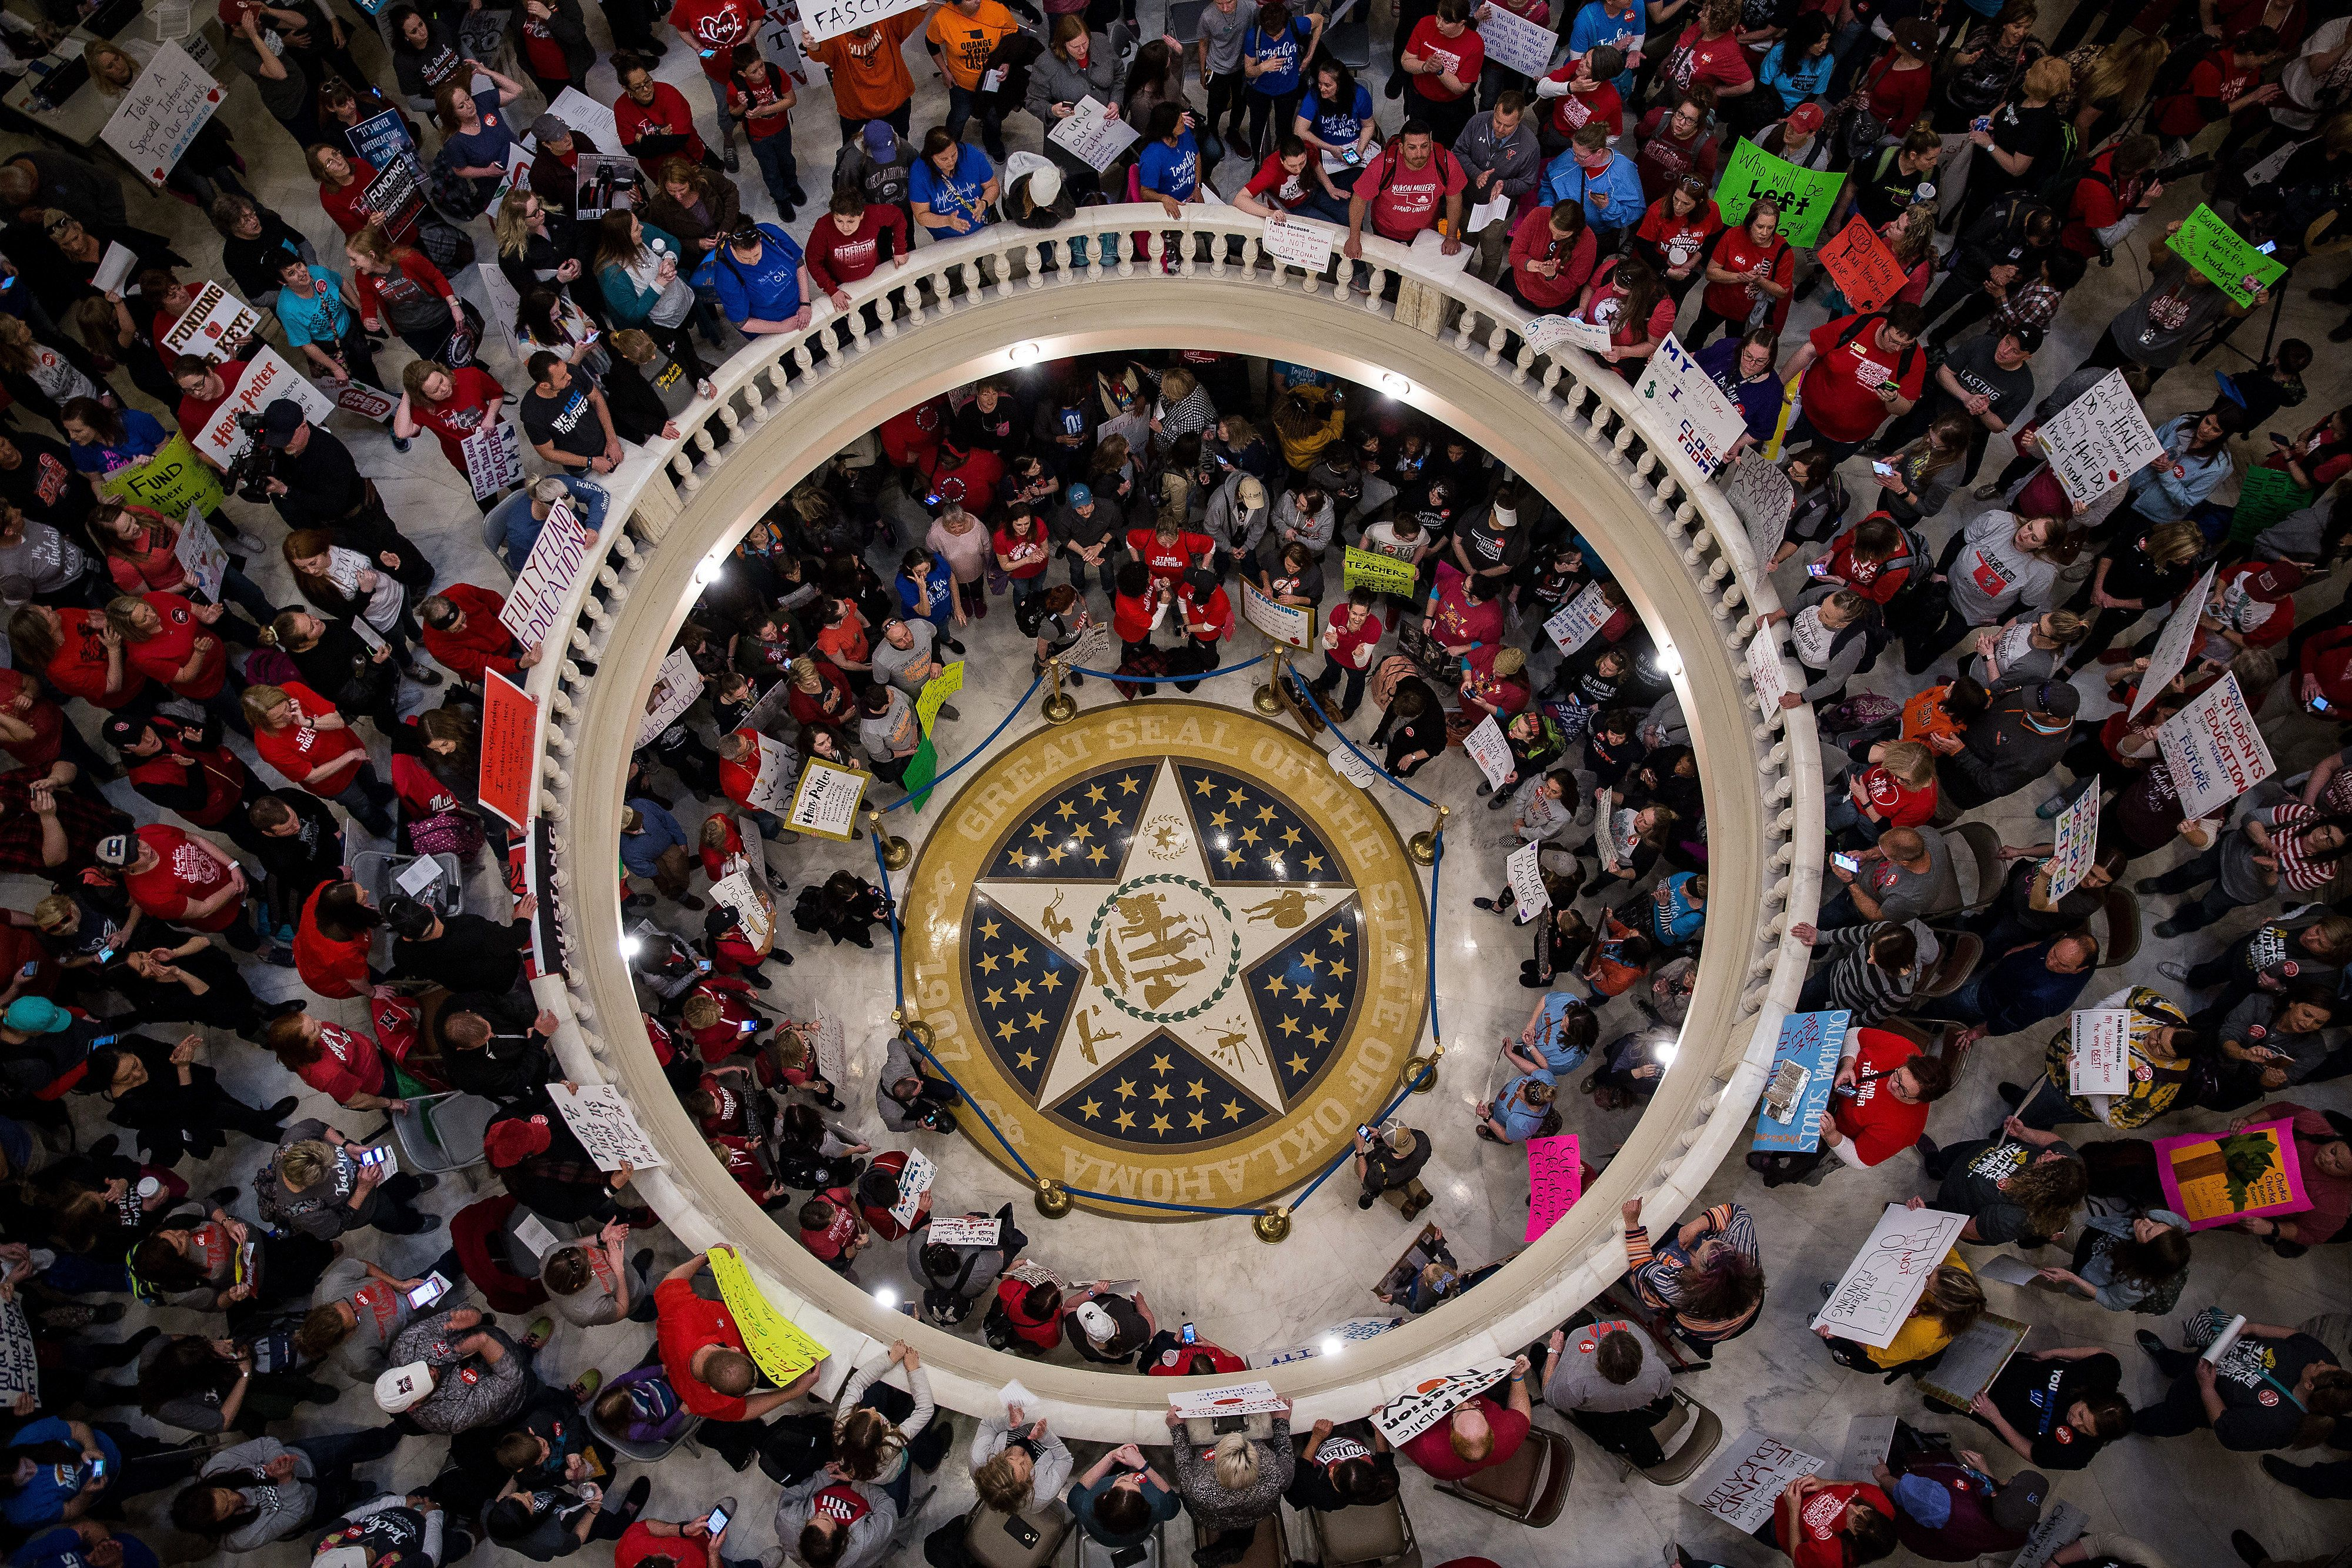 Teachers and demonstrators hold signs during a rally inside the Oklahoma State Capitol building in Oklahoma City, Oklahoma, U.S., on Tuesday, April 3, 2018. Hundreds of teachers crowded into the Oklahoma Capitol for a second day Tuesday to press demands for additional funding for the state's public schools. Photographer: Scott Heins/Bloomberg via Getty Images